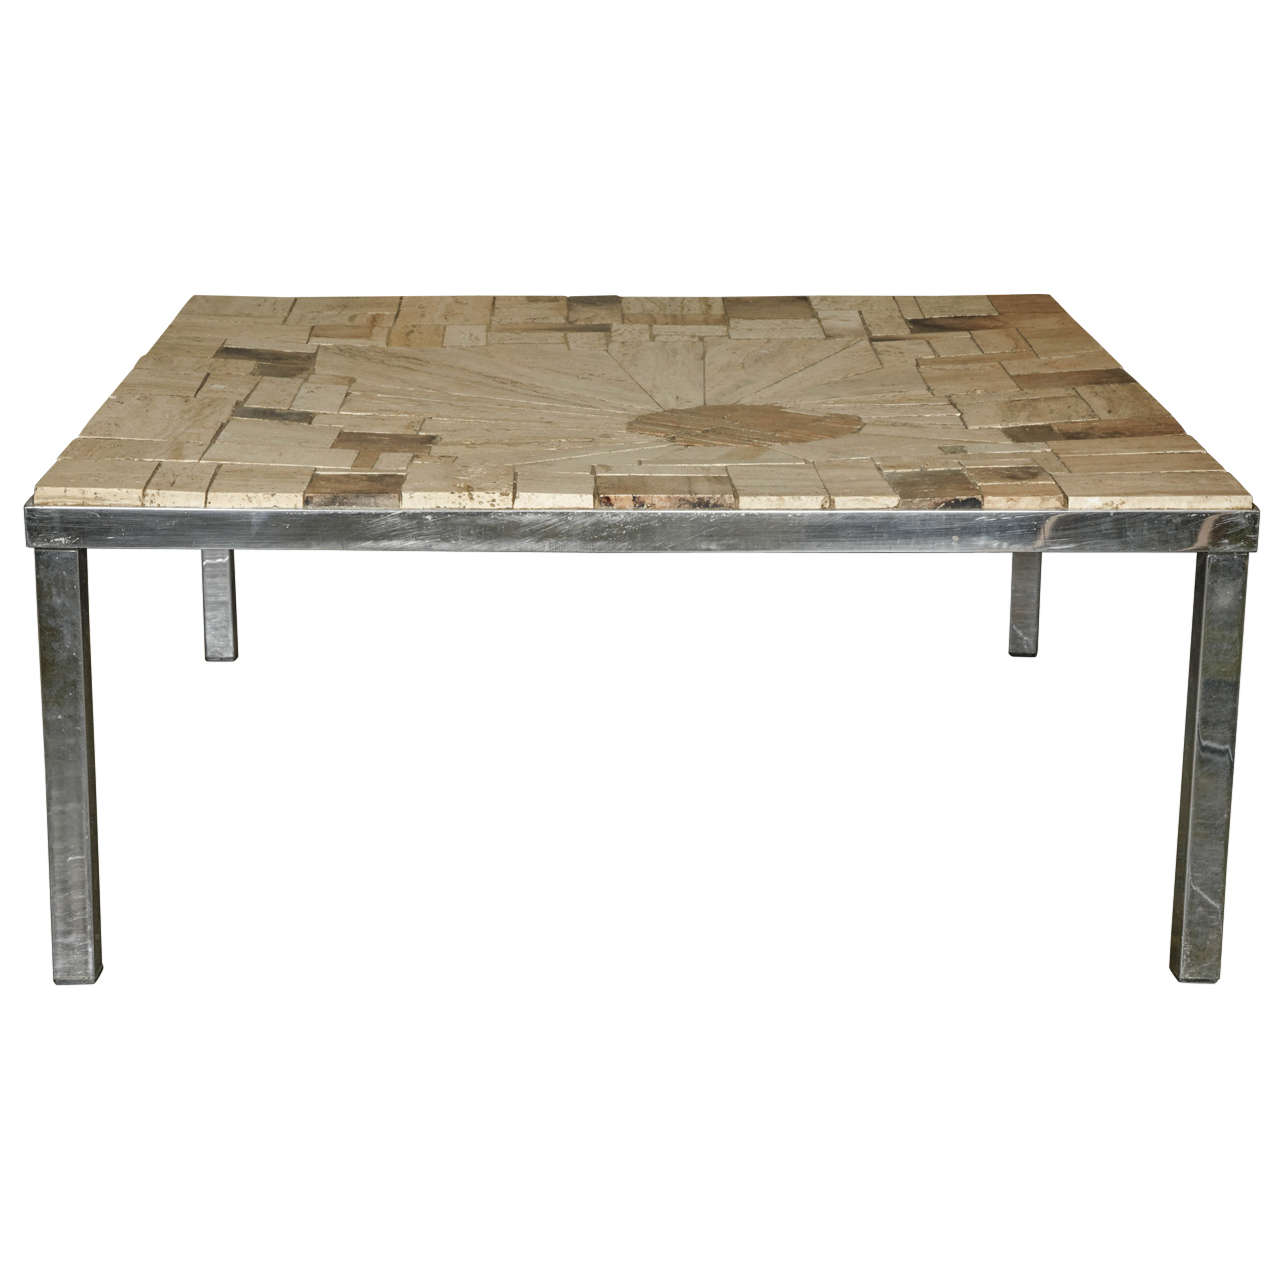 Coffee Table In Travertine Patchwork At 1stdibs